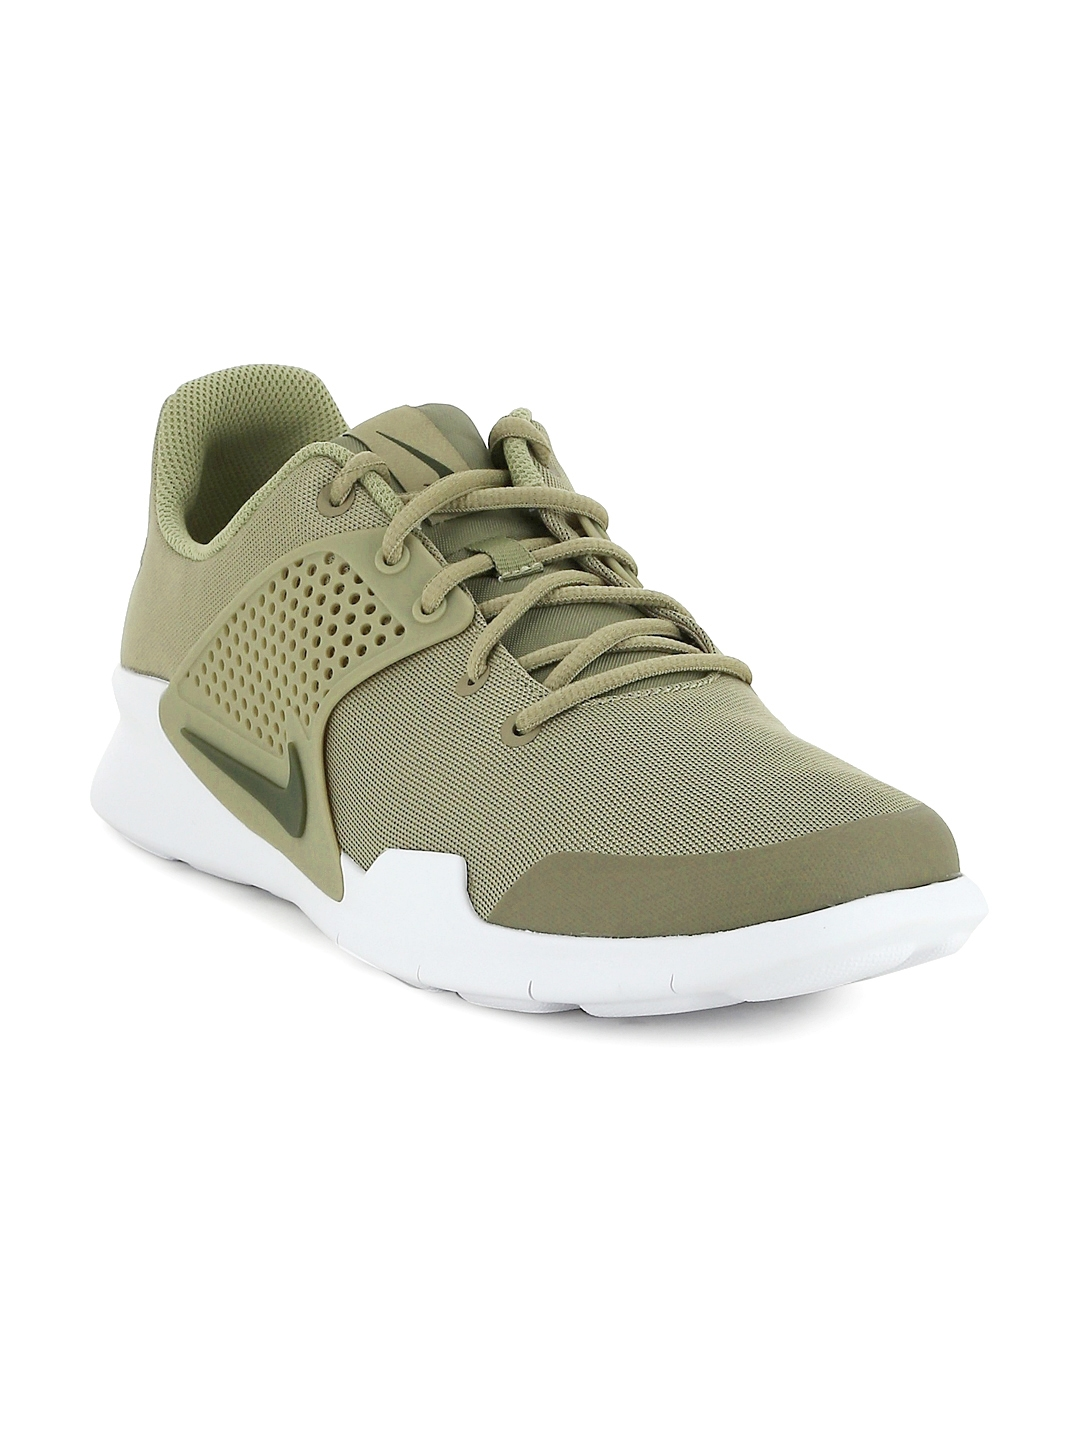 d0f497777865 Buy Nike Men Olive Green ARROWZ Sneakers - Casual Shoes for Men ...